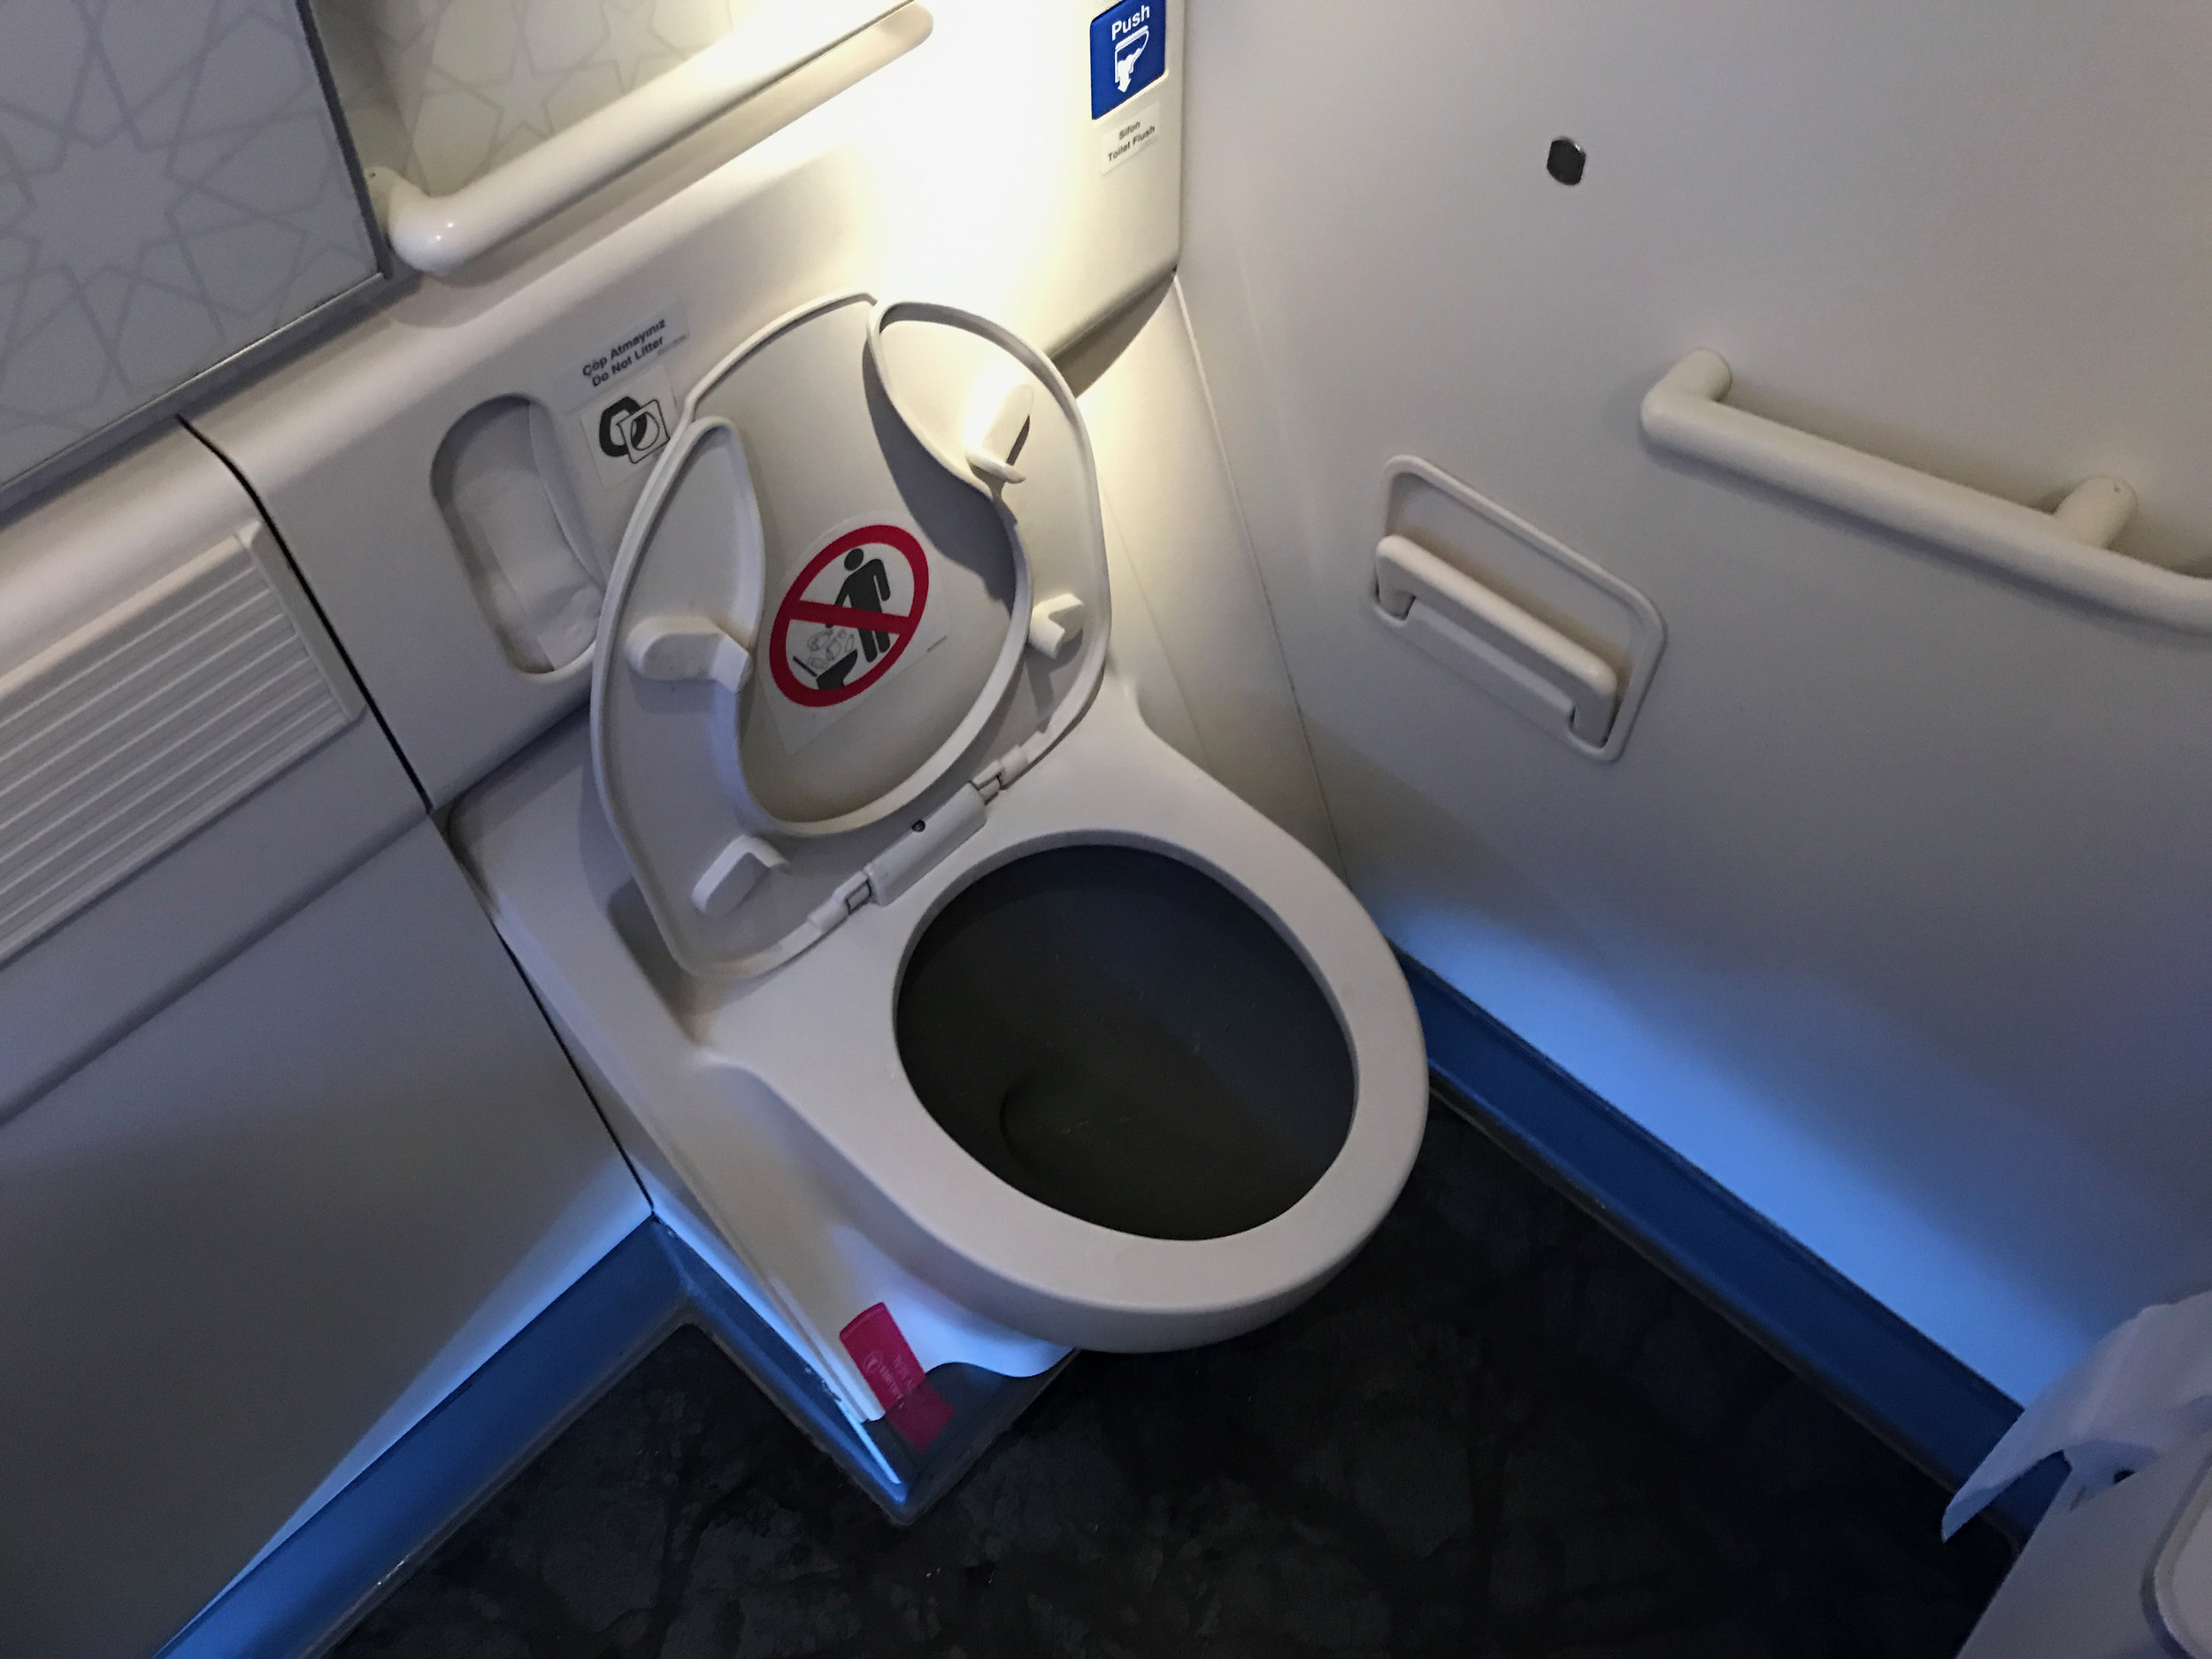 Turkish Airlines business class 777 lavatory (1).jpg